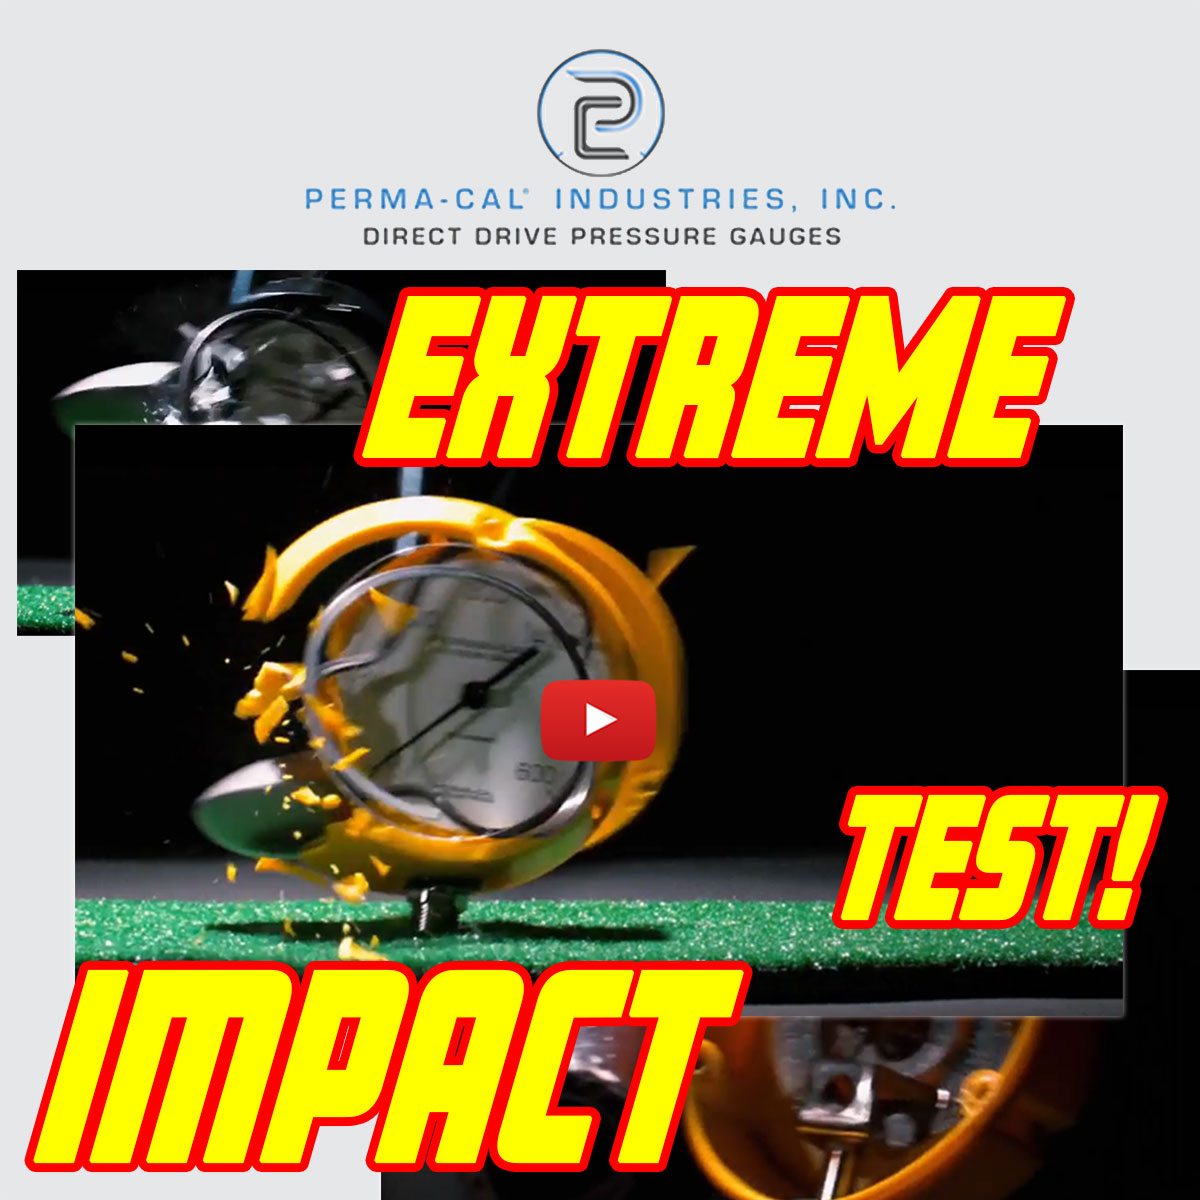 Introducing the Perm-Cal Extreme Impact Test